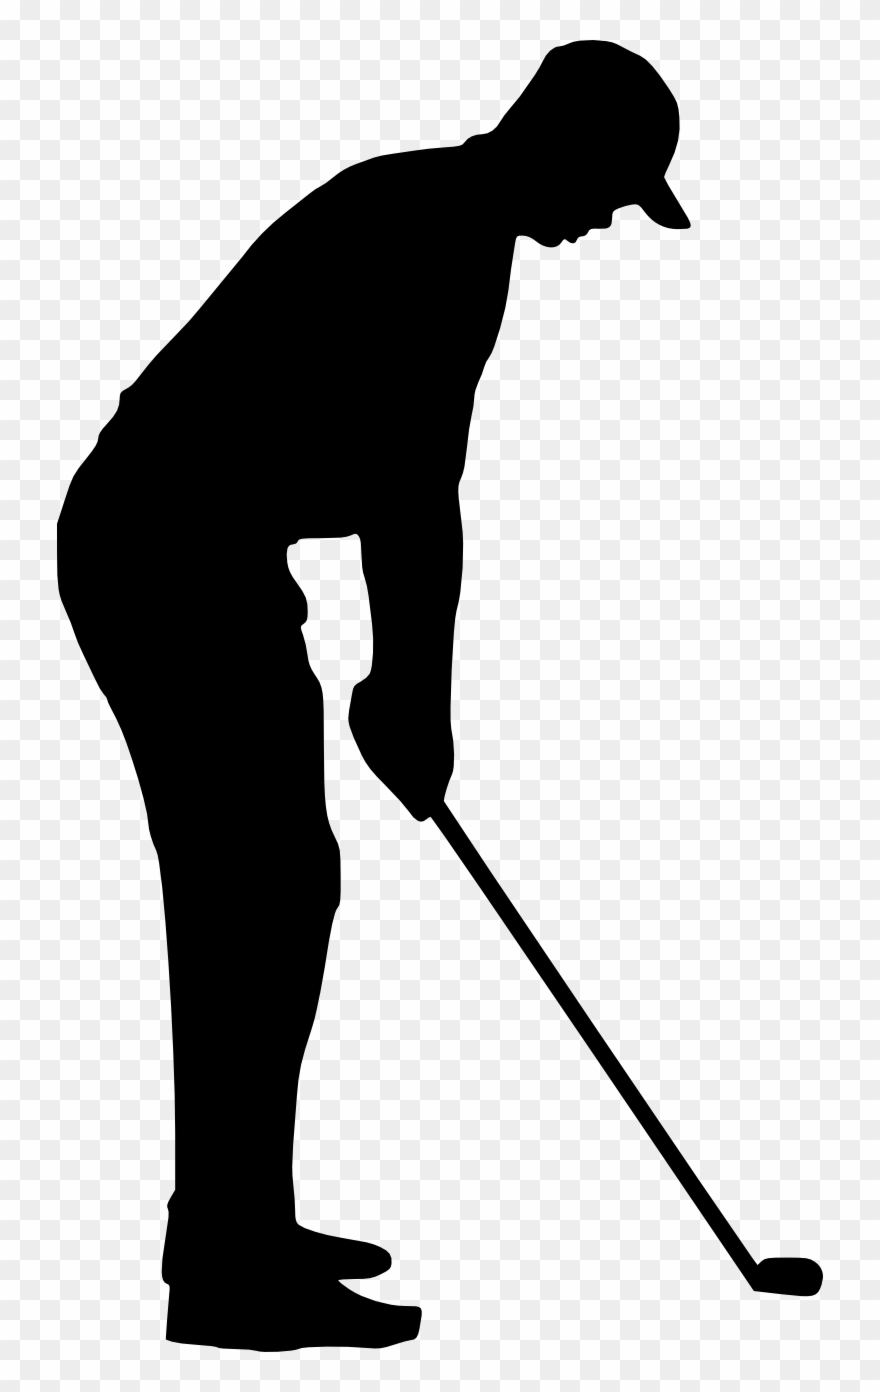 hight resolution of golfing clipart retro sport transparent background golf clipart png download